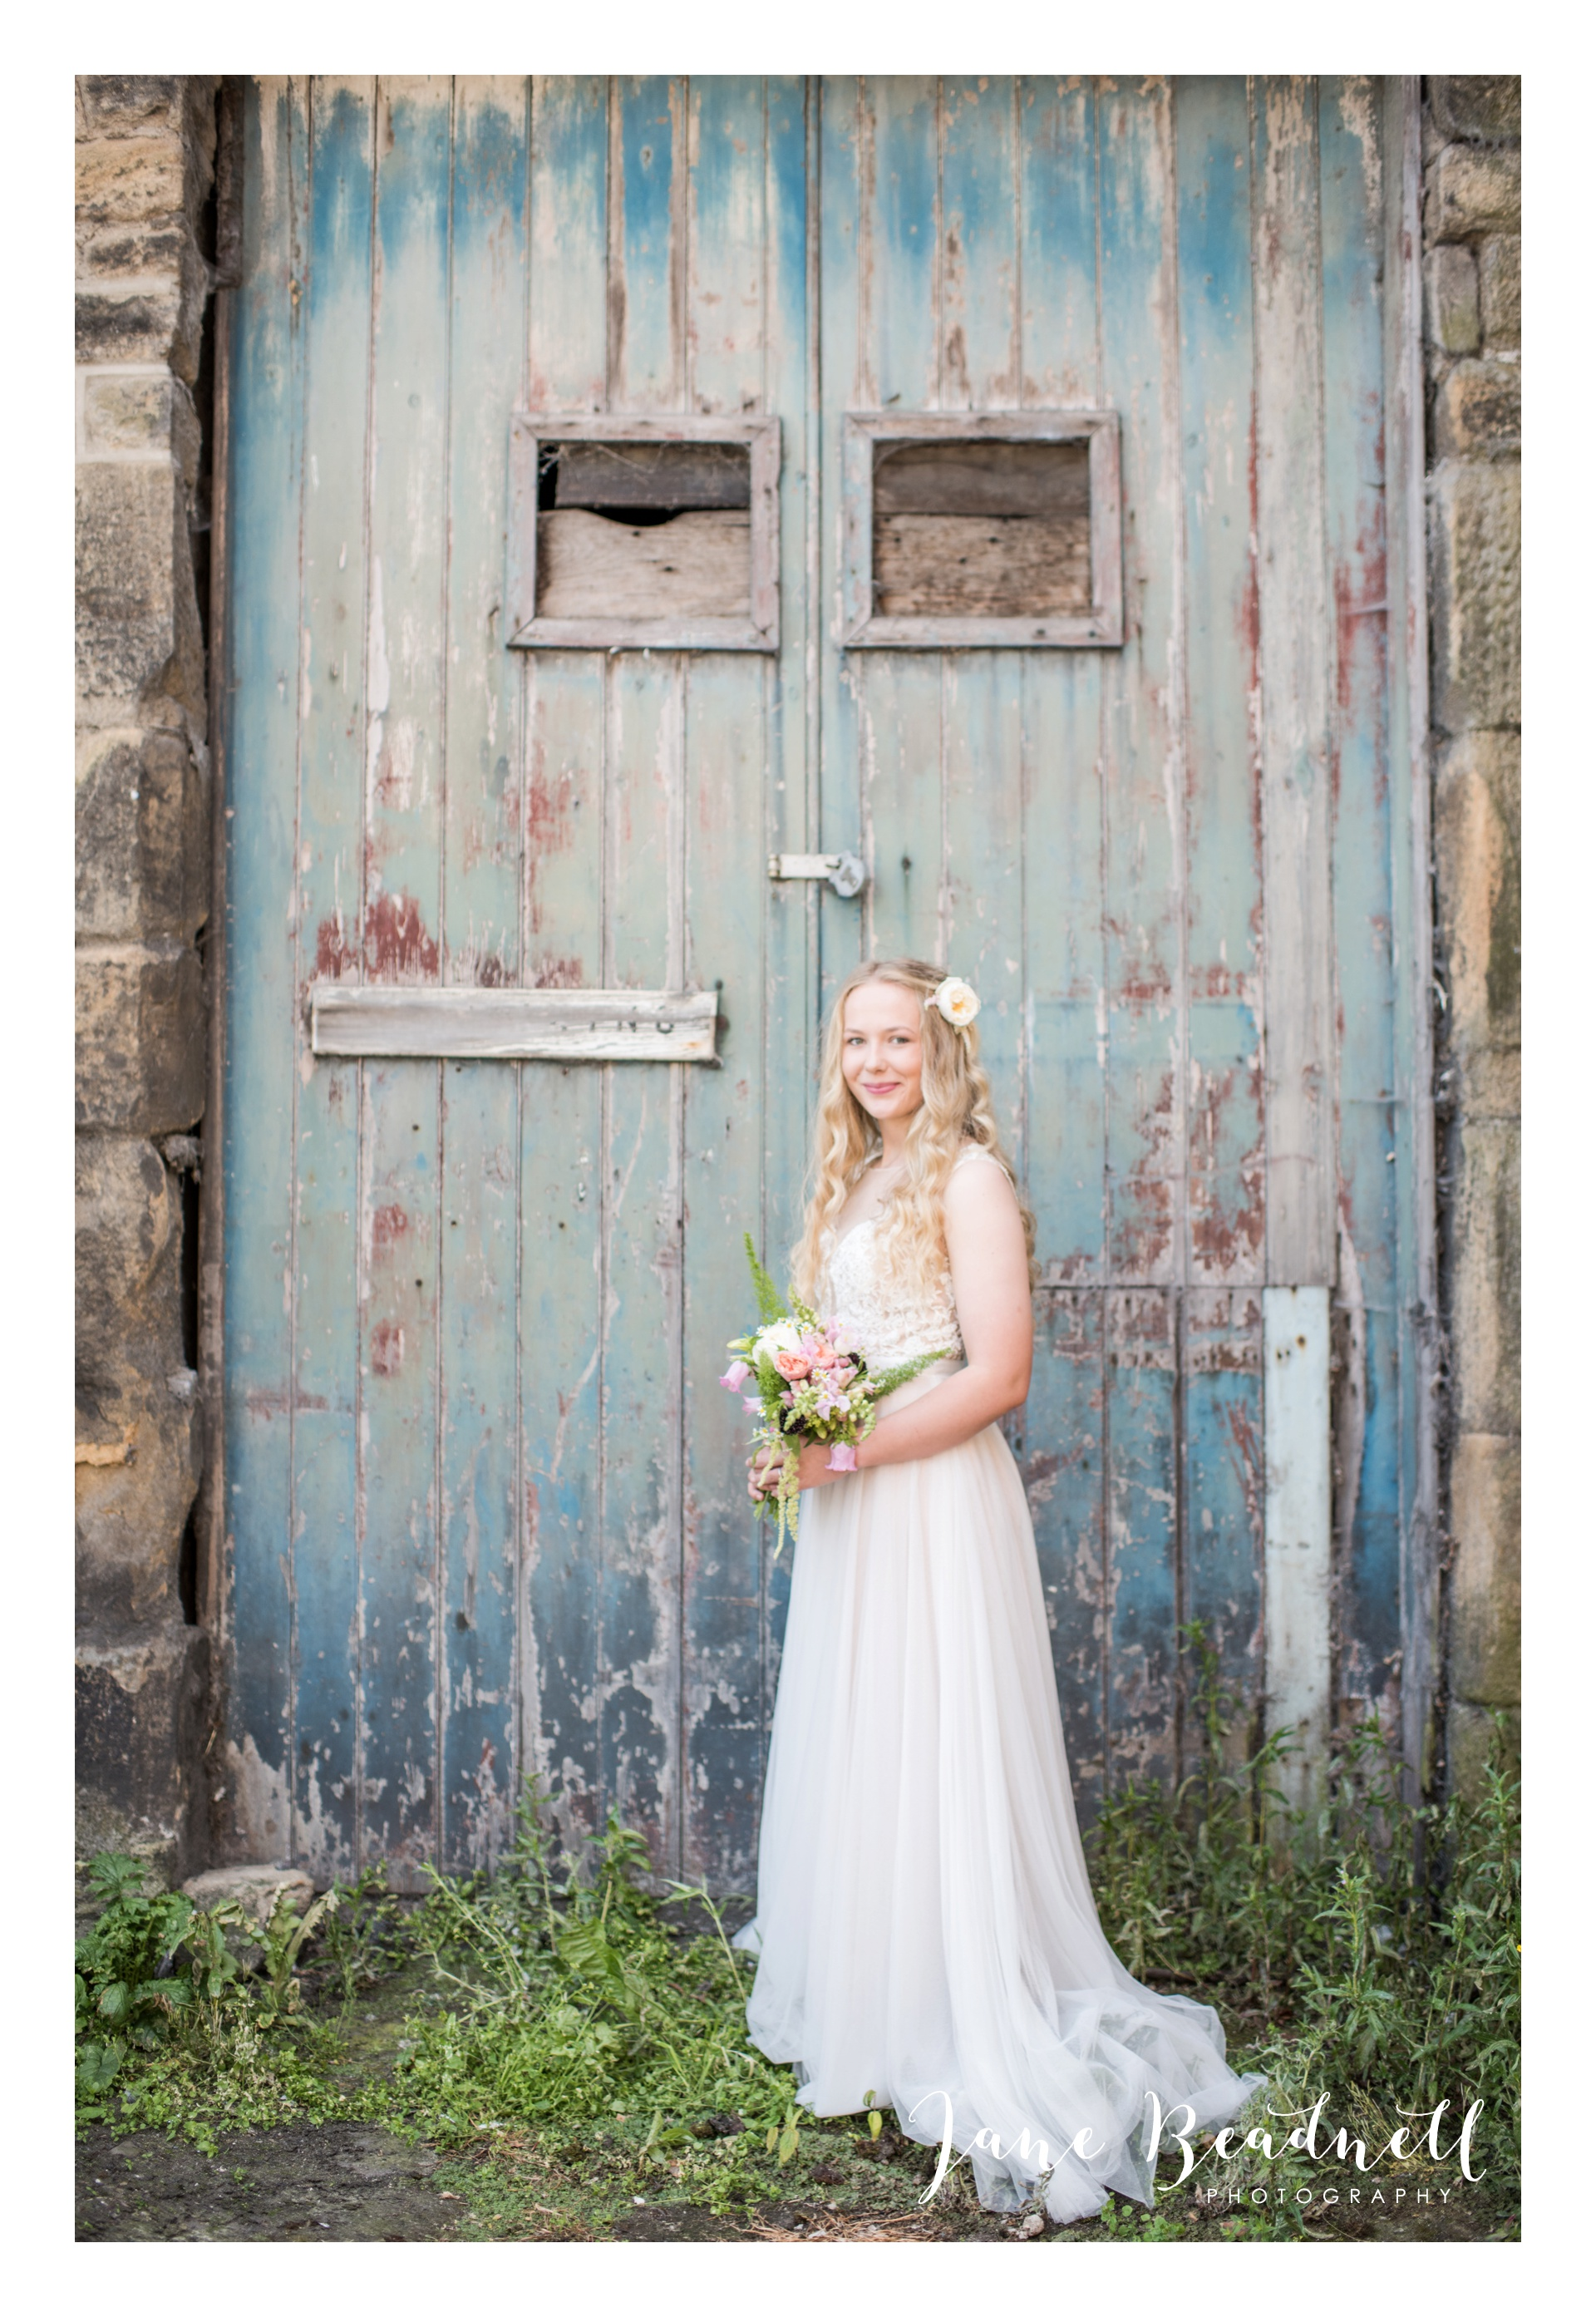 Fine art wedding photography by Jane Beadnell Photography Leafy Couture wedding flowers_0039